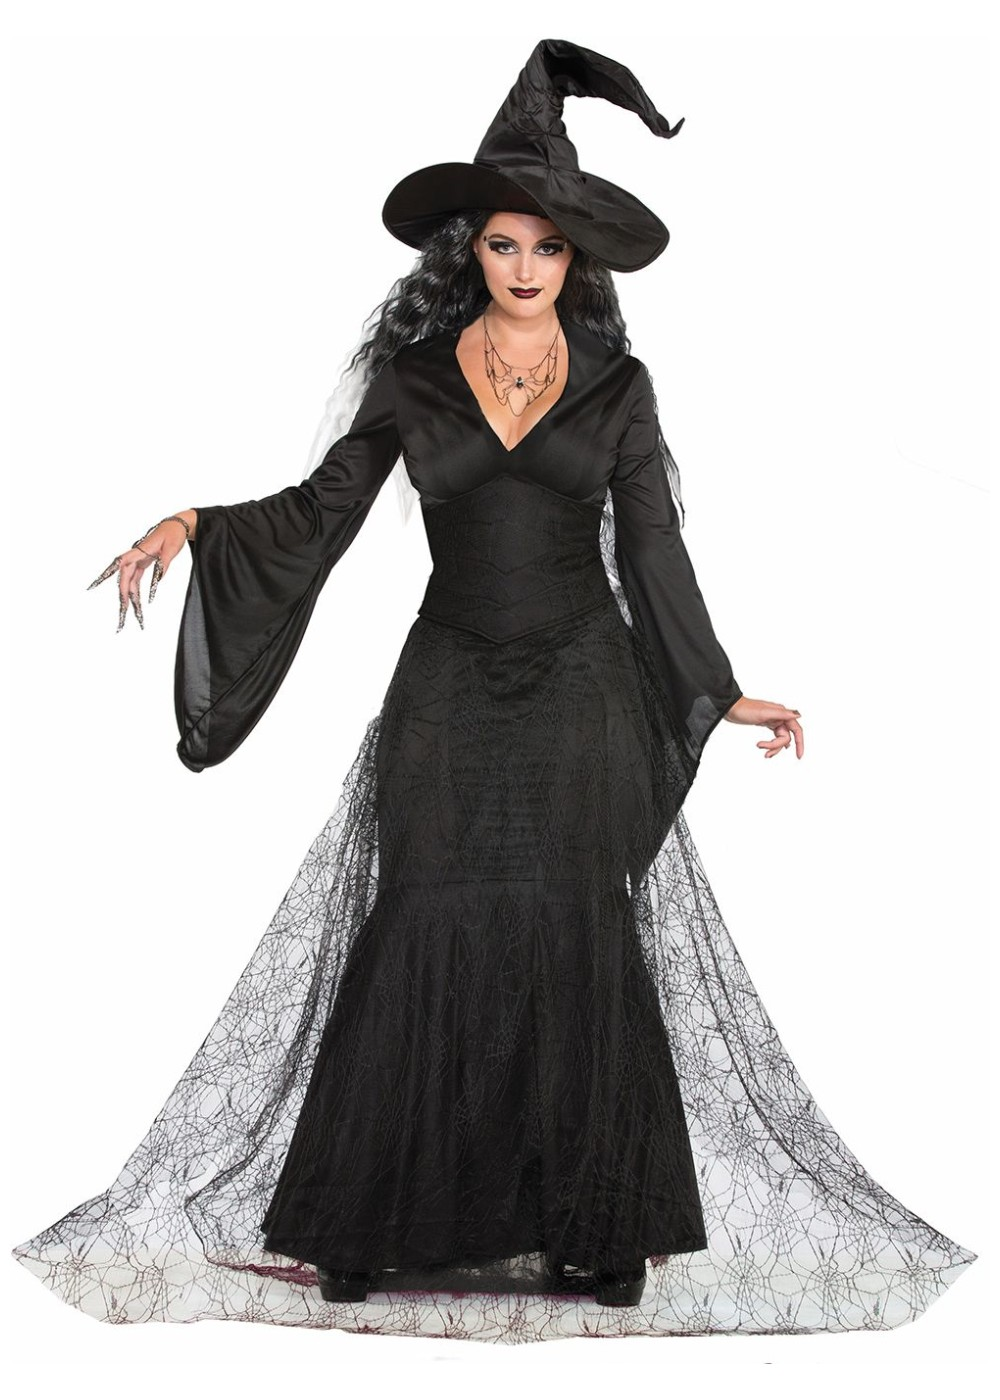 Black Mist Witch Women Costume on food of the 1950s